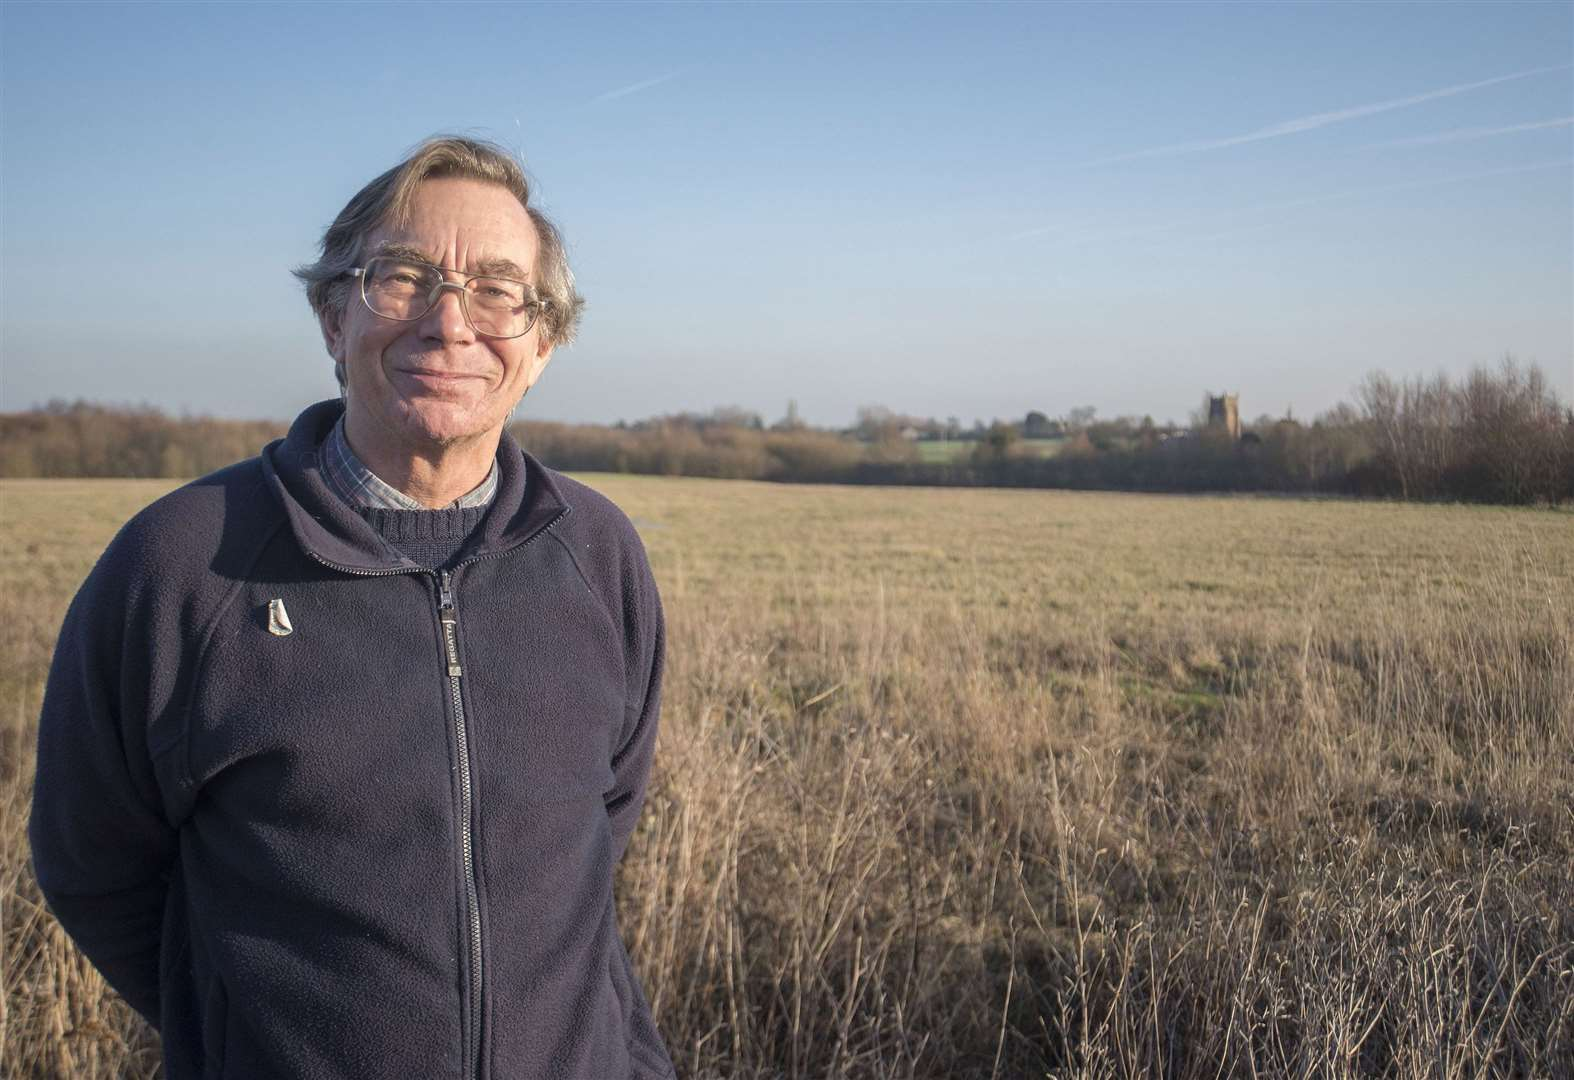 Development proposal for Great Cornard draws concerns about loss of green space